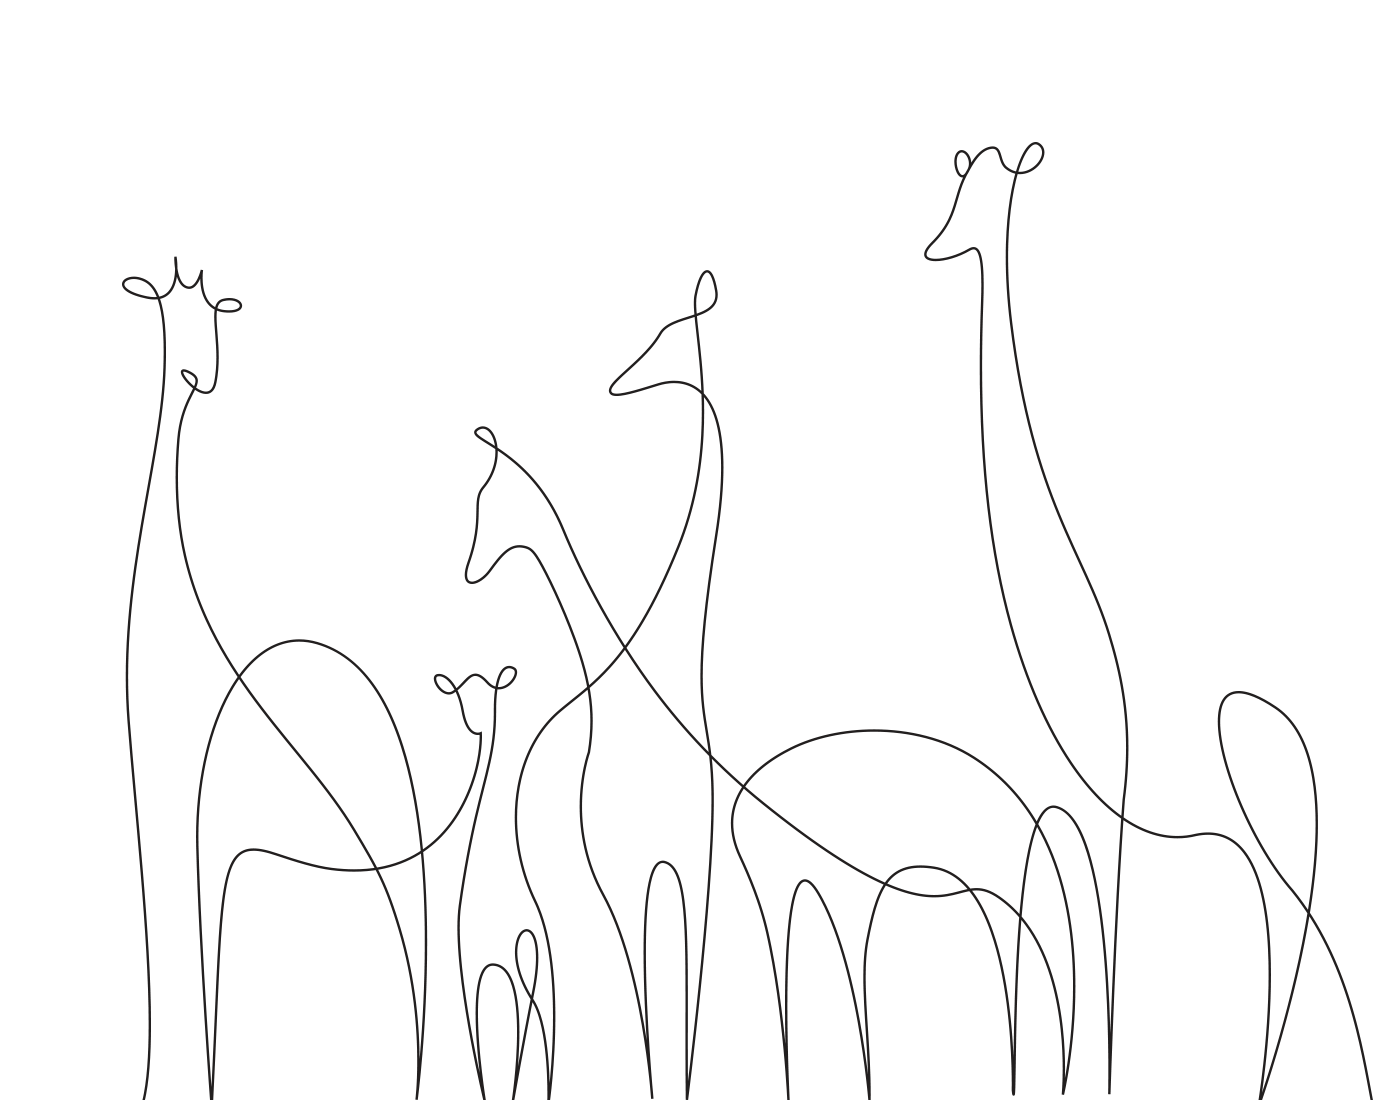 Single Line Drawings Of Animals : Minimal elegant one line drawings illustrate the